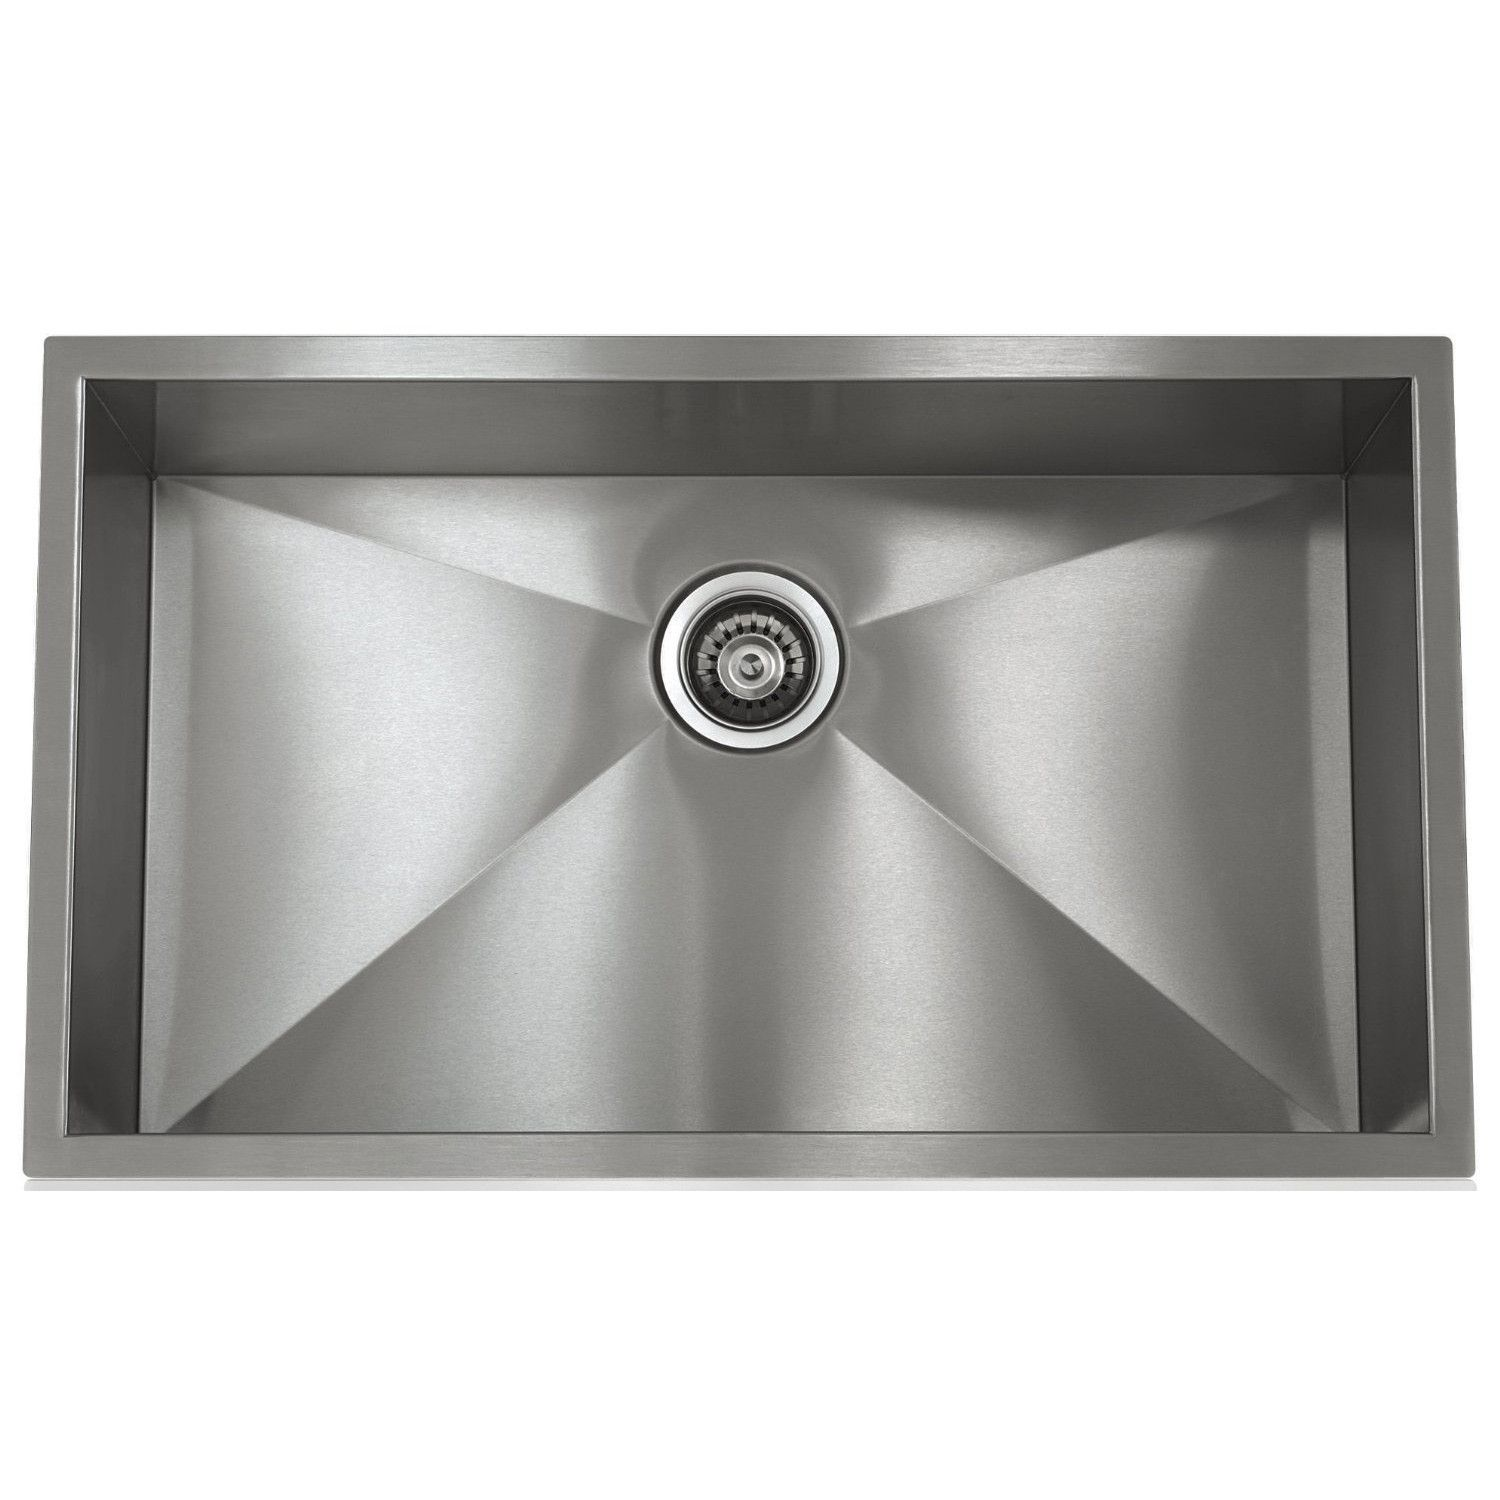 Lenova Ss 0ri S5 28 Inch Undermount Single Bowl 16 Gauge Stainless